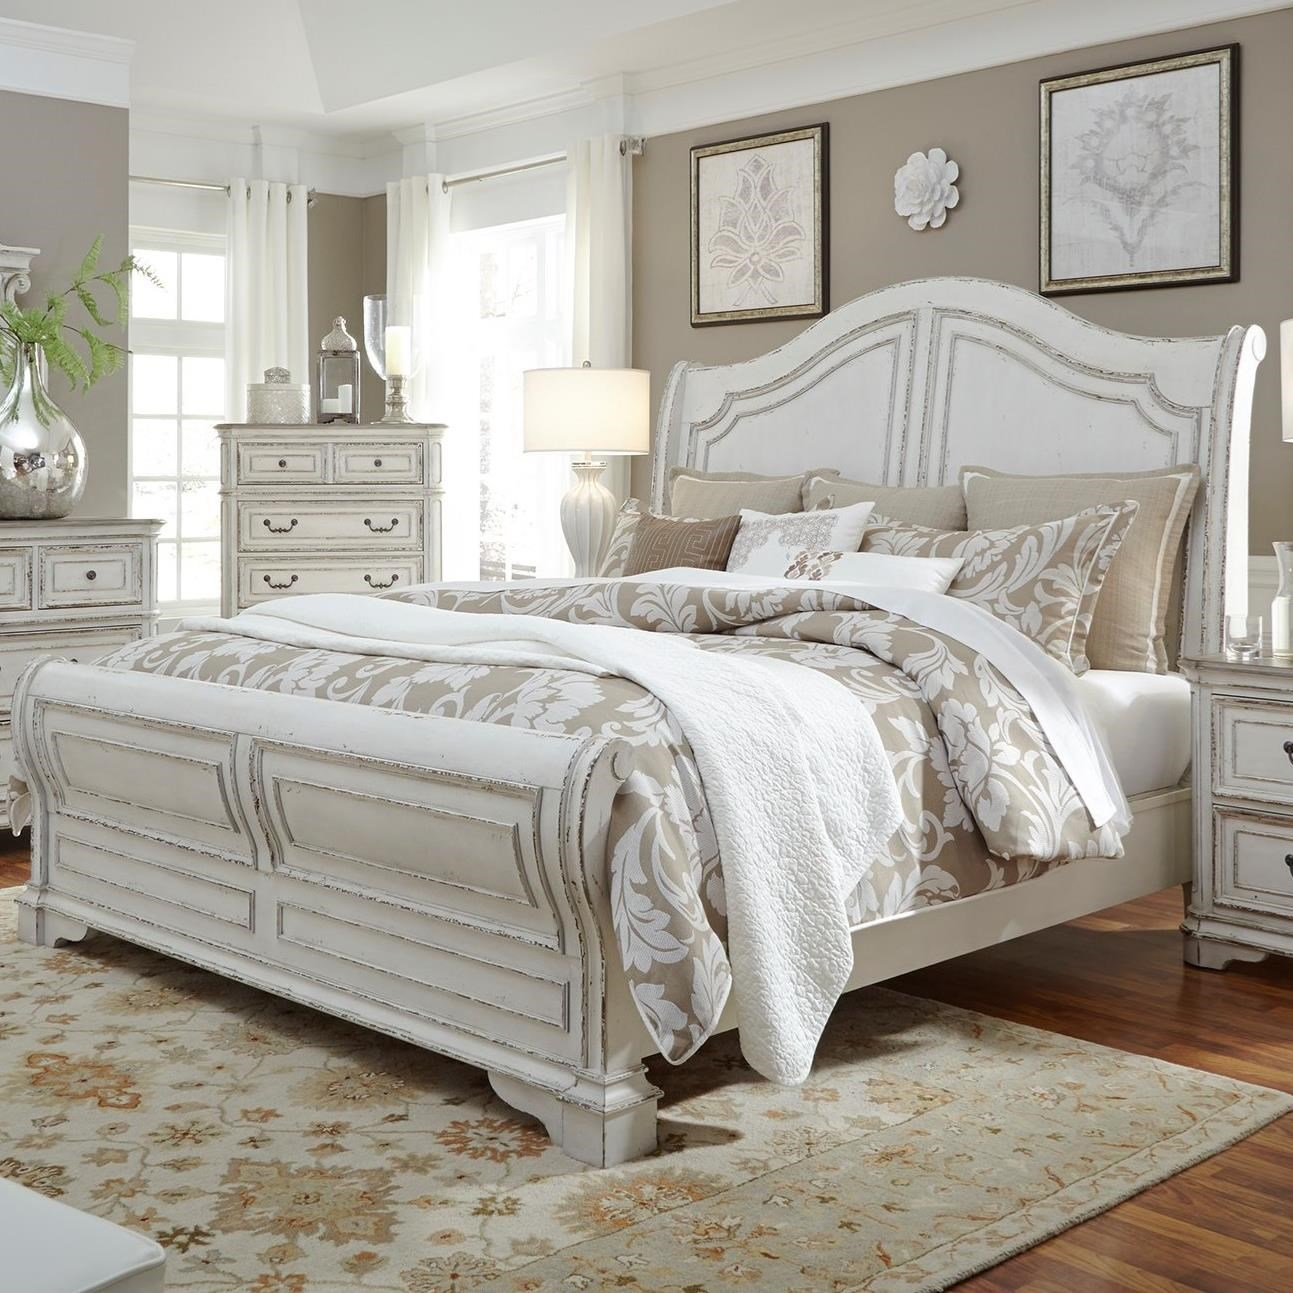 King Sleigh Bed - King Sleigh Bed With Antique White Finish By Liberty Furniture